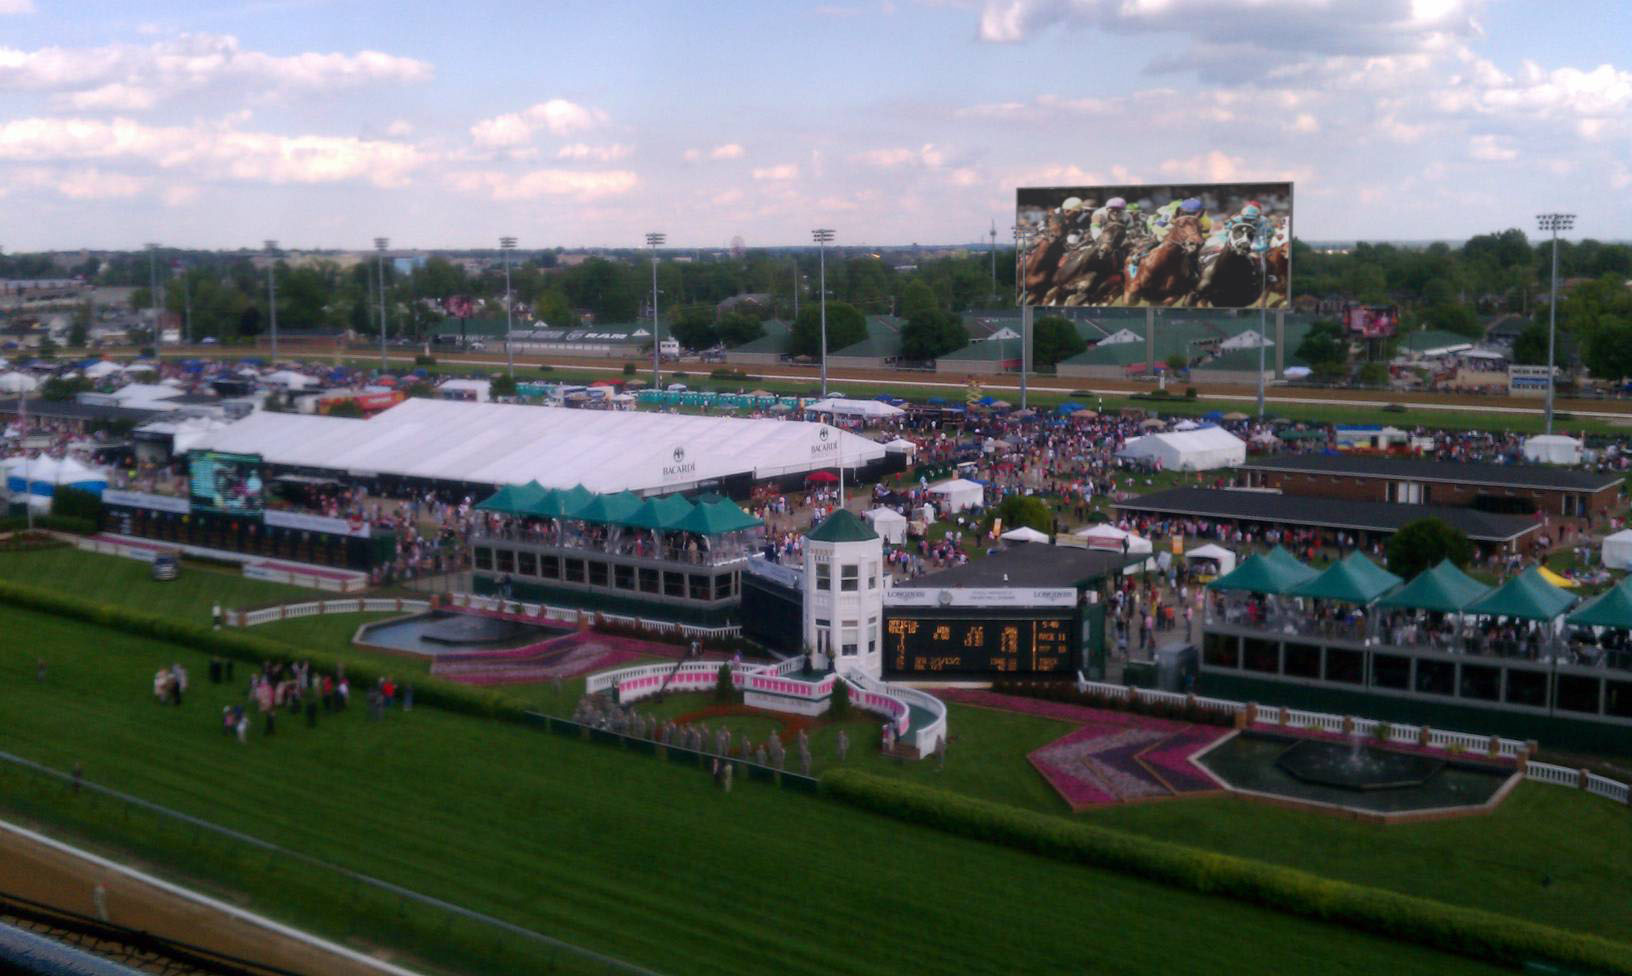 Churchill Downs will add a 15,224-s.f., high-definition LED video board in time for the 2014 Longines Kentucky Oaks and Kentucky Derby Presented by Yum! Brands.